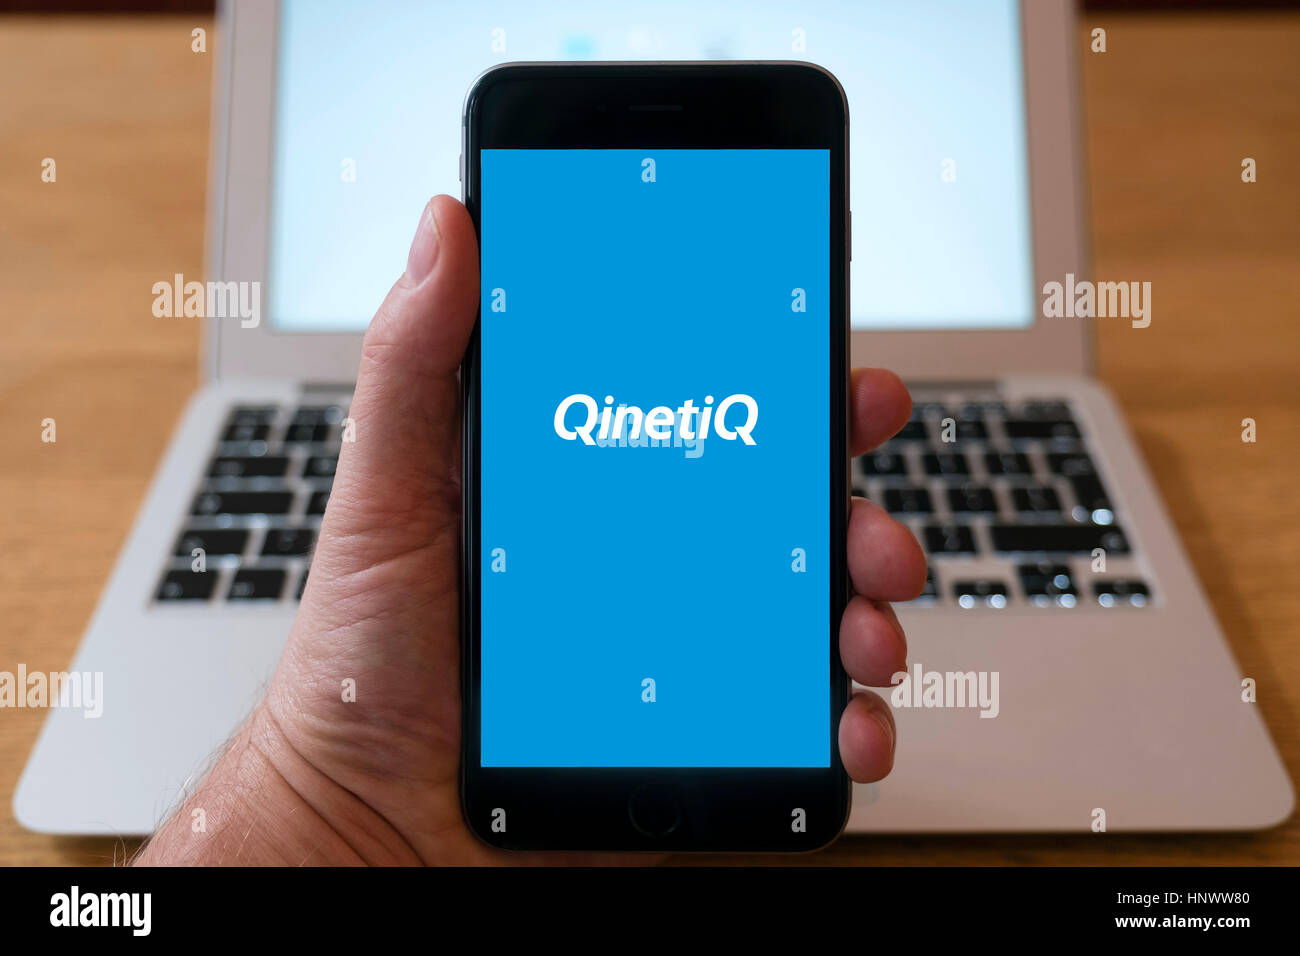 Logo of Qinetiq defence industry group  on smart phone screen. - Stock Image